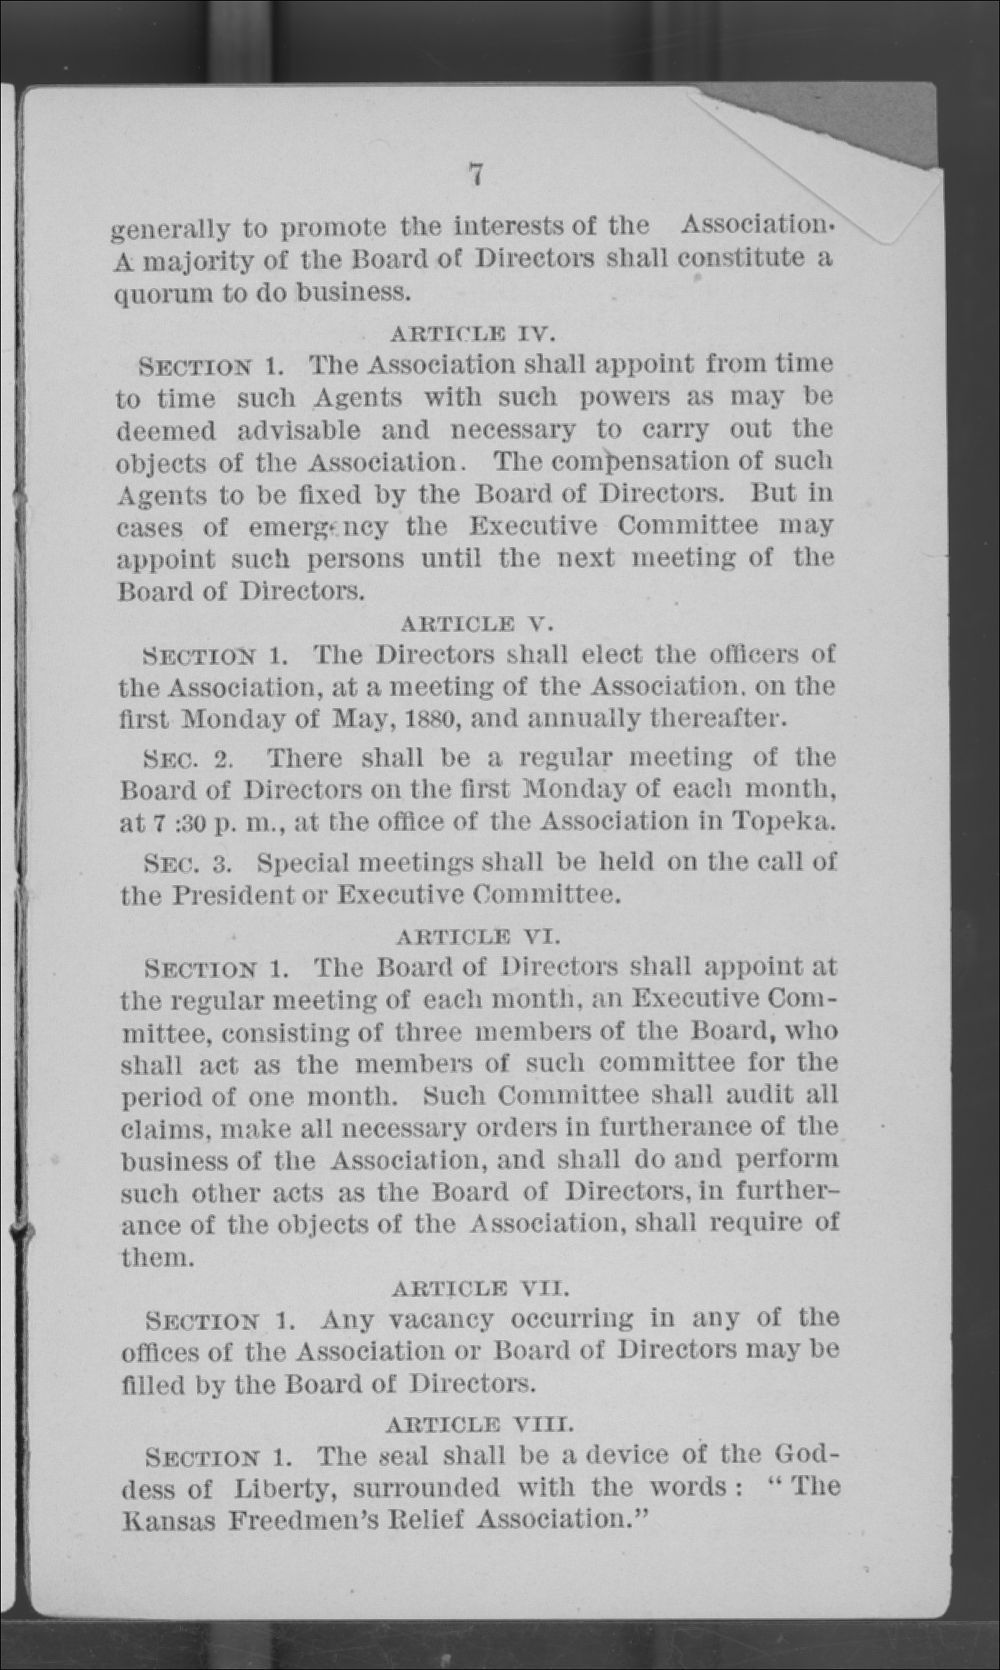 Articles of Corporation and By-Laws of the Kansas Freedmen's Relief Association - 7